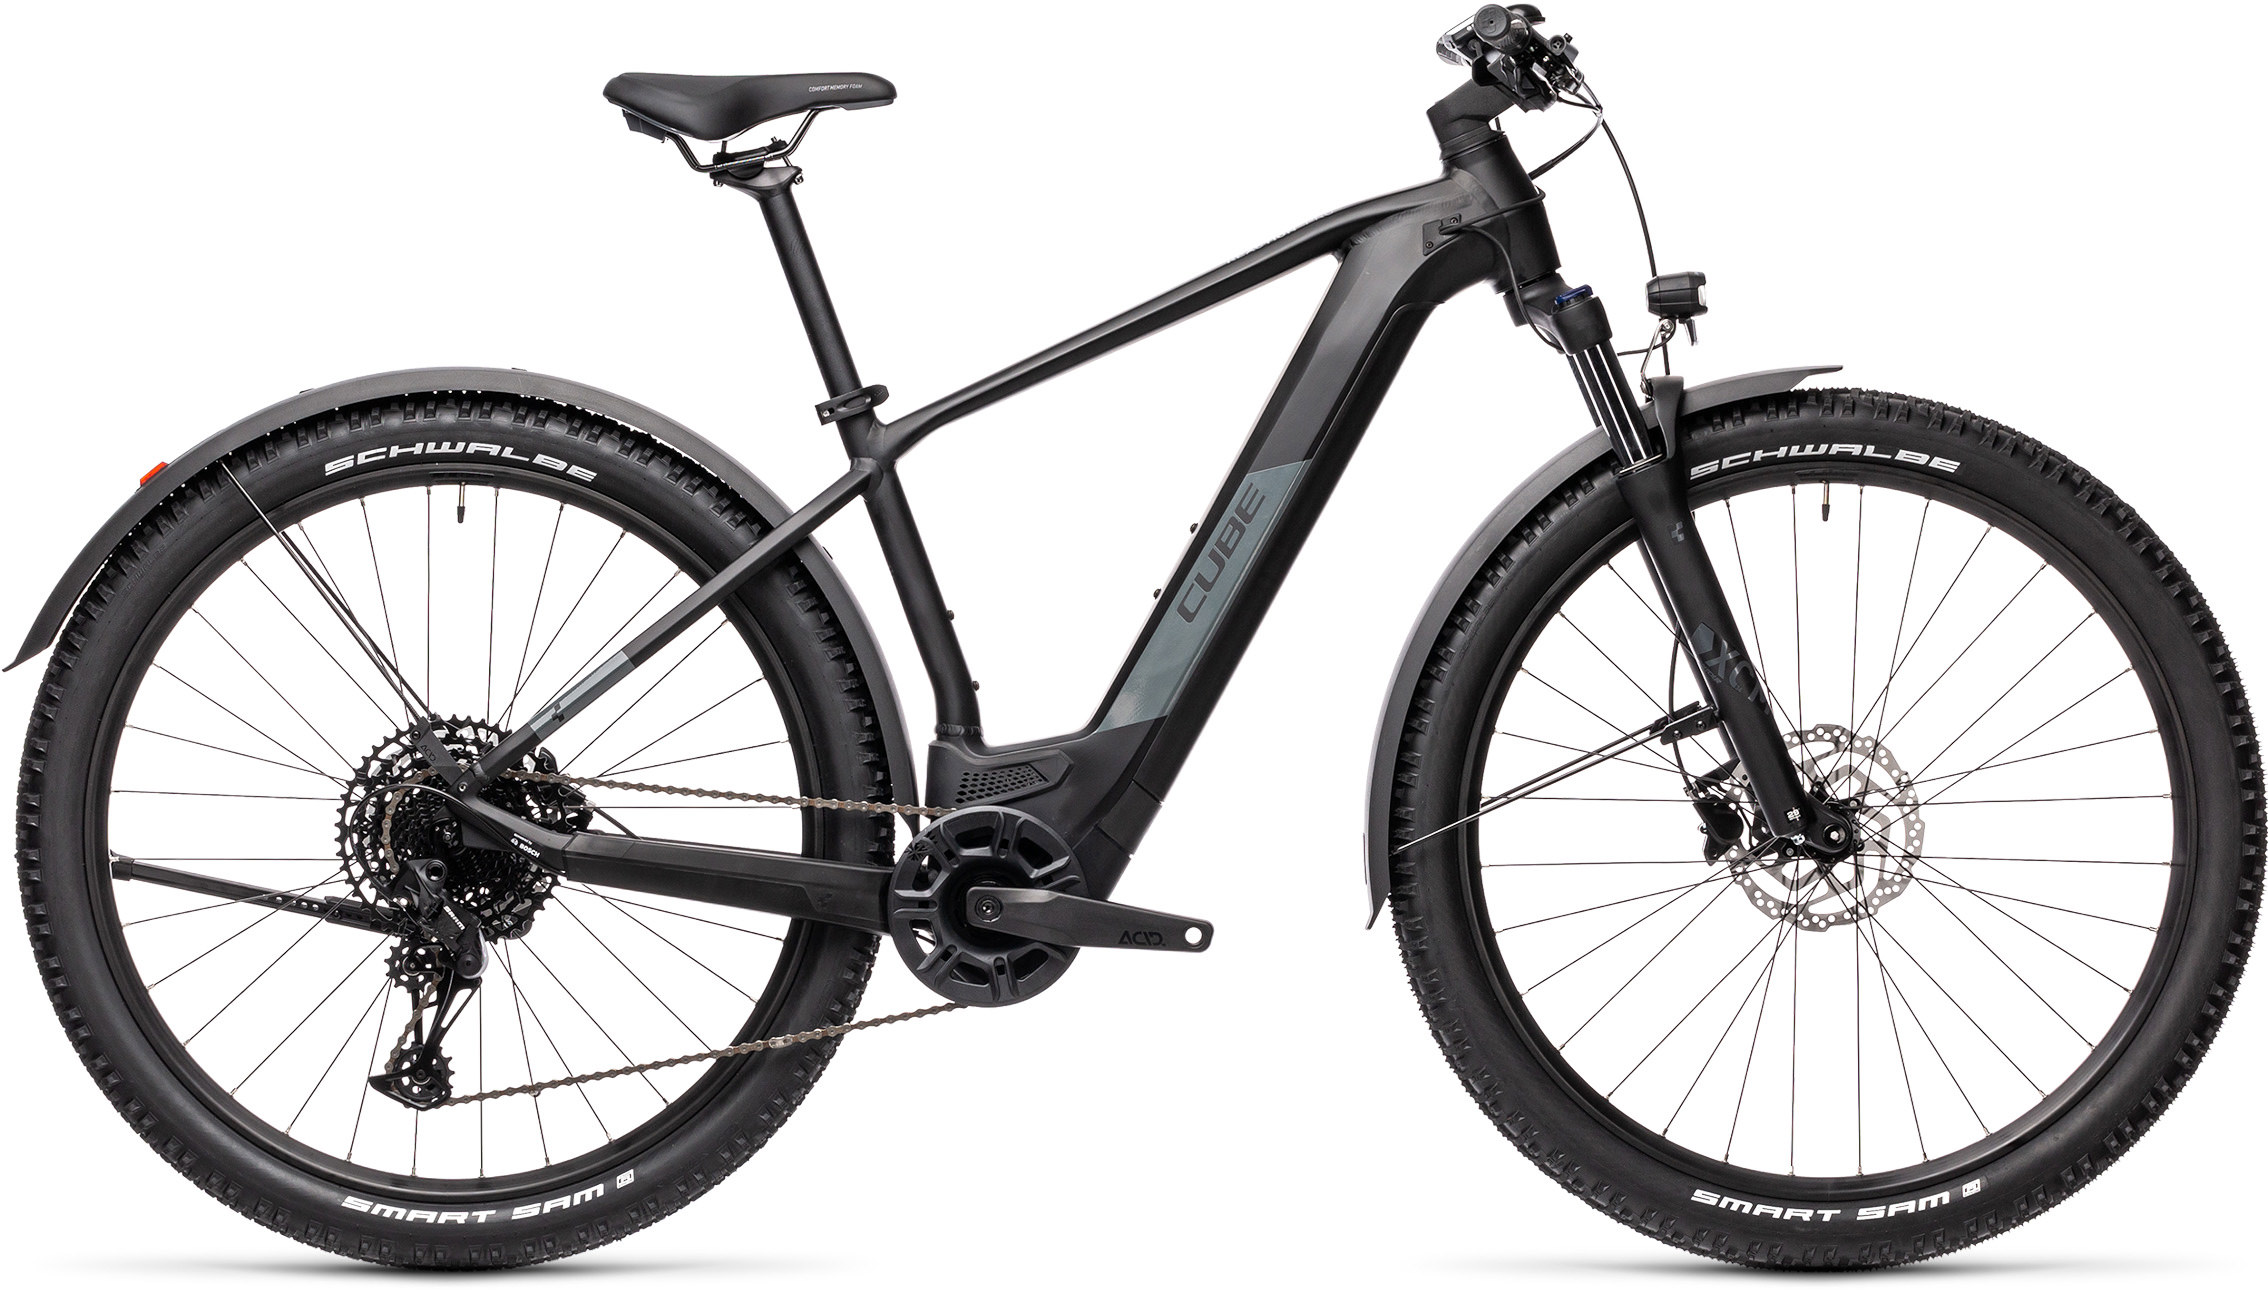 Reaction Hybrid Pro 500 29 Allroad black´n´grey | Bouticycle